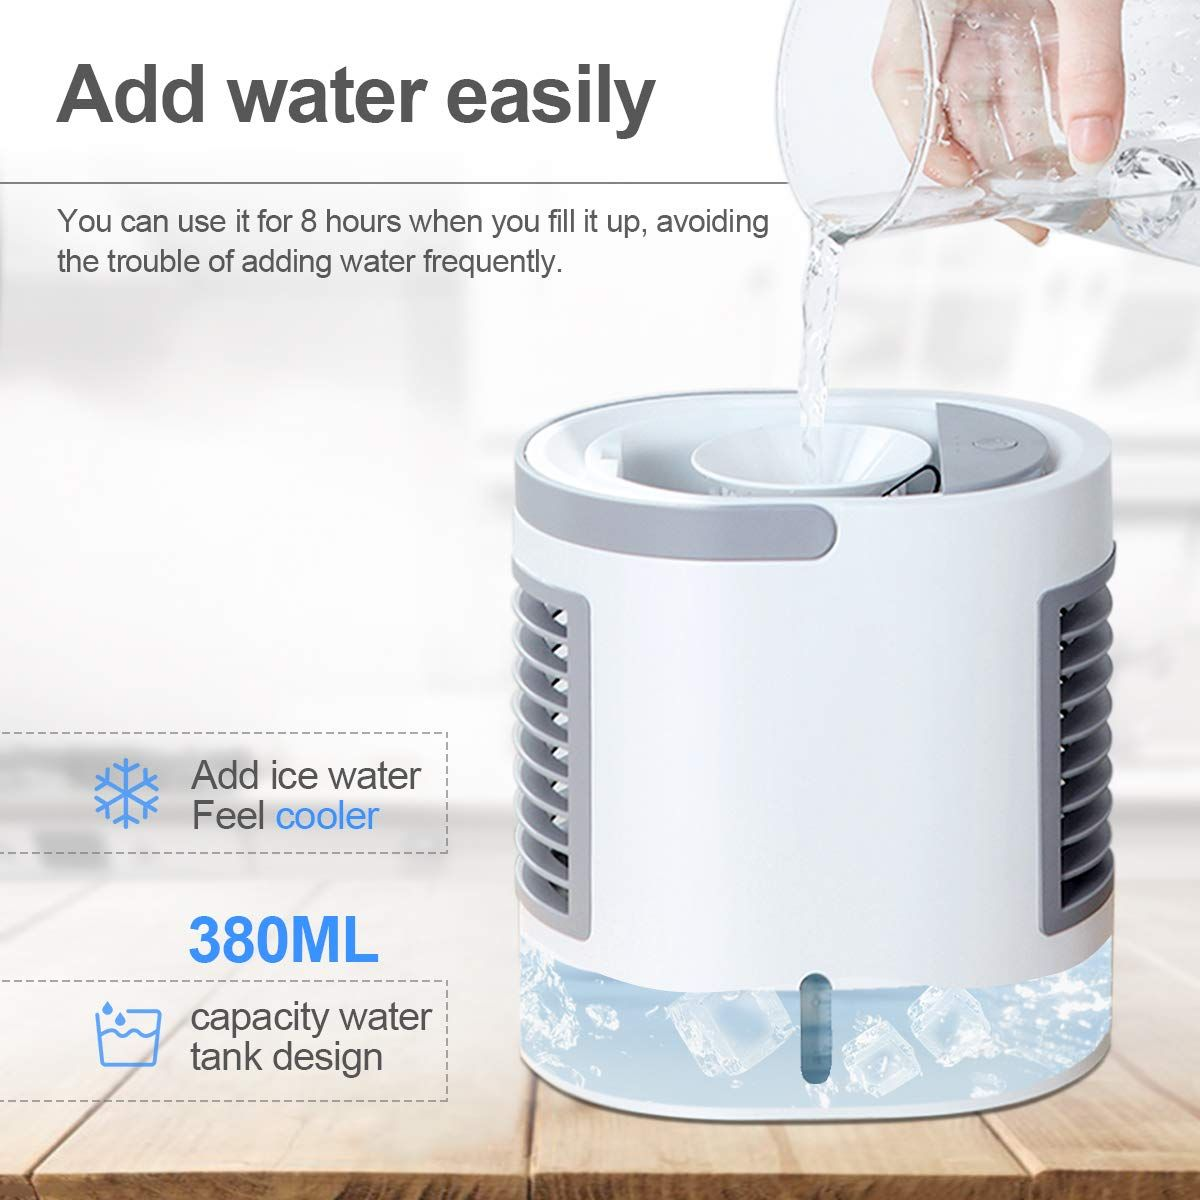 ENKLEN Portable Air Conditioner, Personal Mini Air Cooler